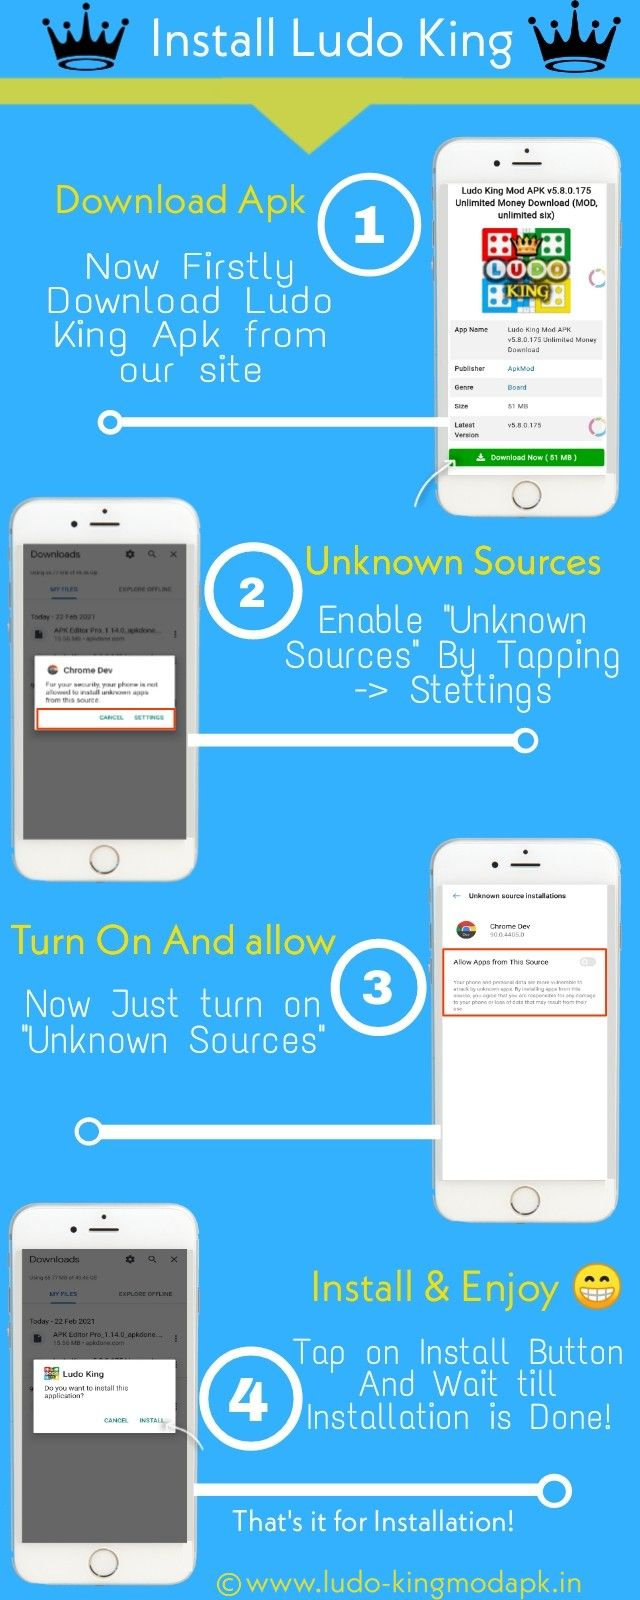 Infograpfic image About Ludo King Installation Process